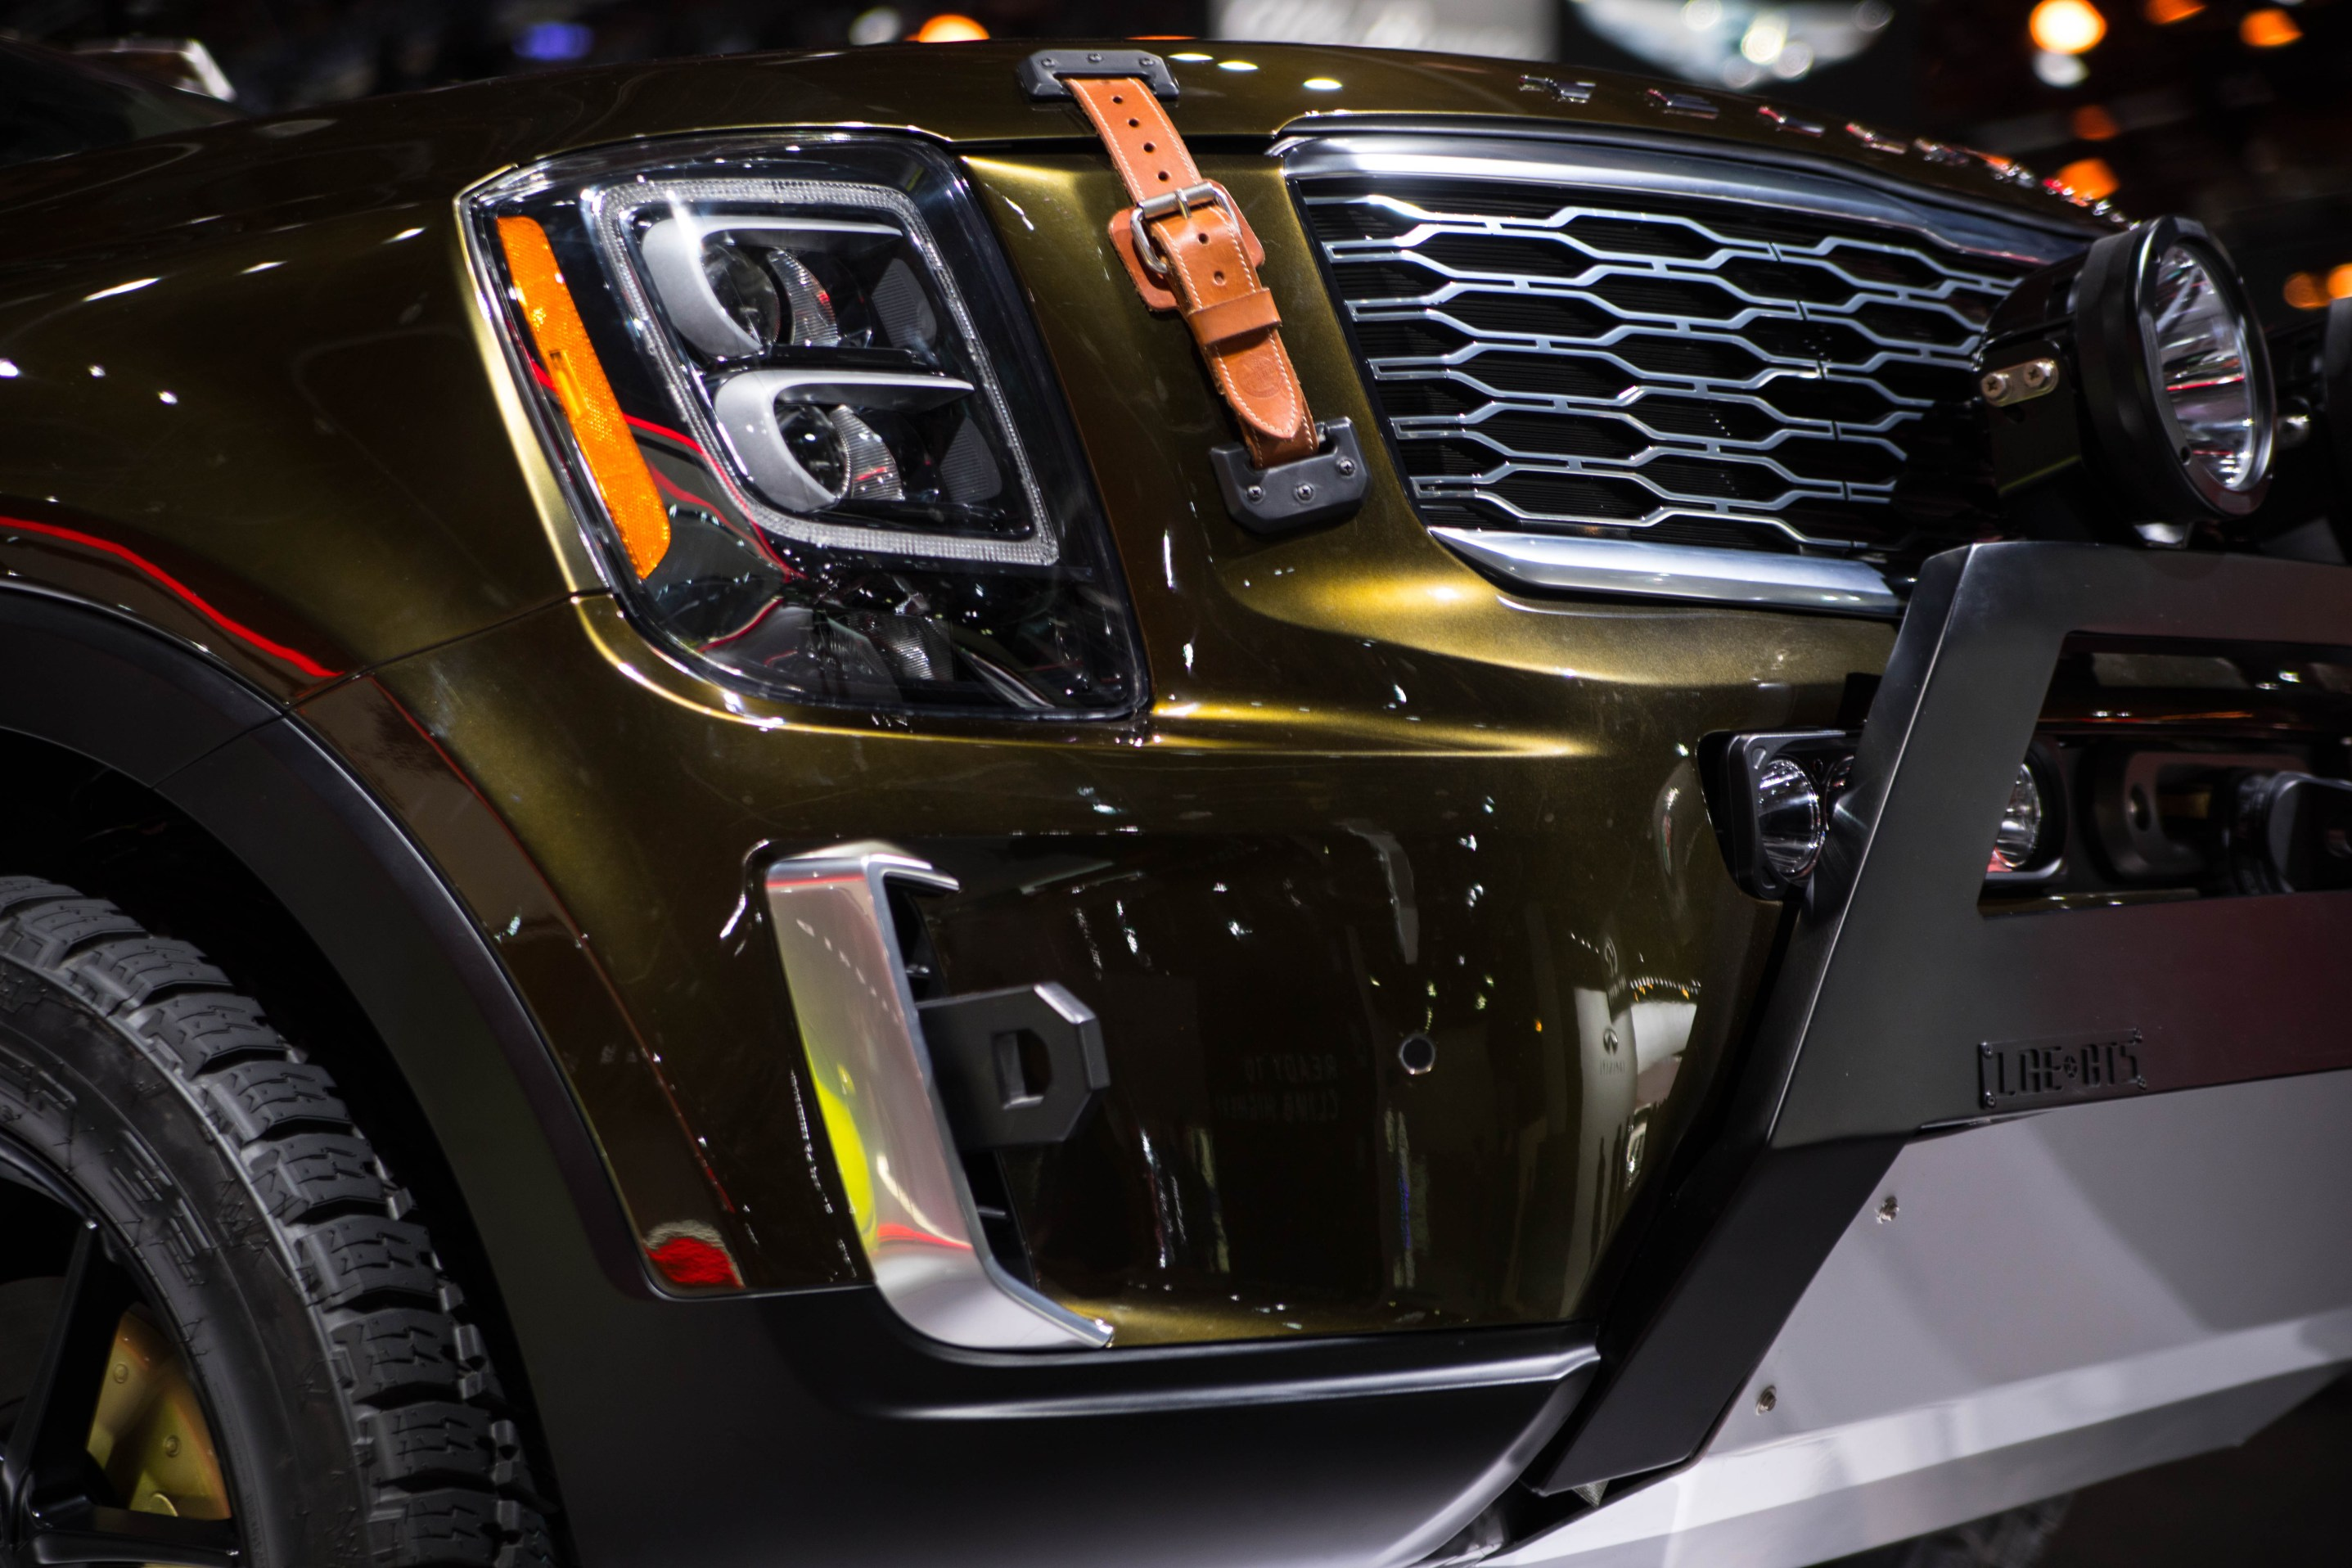 Kia Telluride Luxury Sport ATV Concept Car by Annie Fairfax